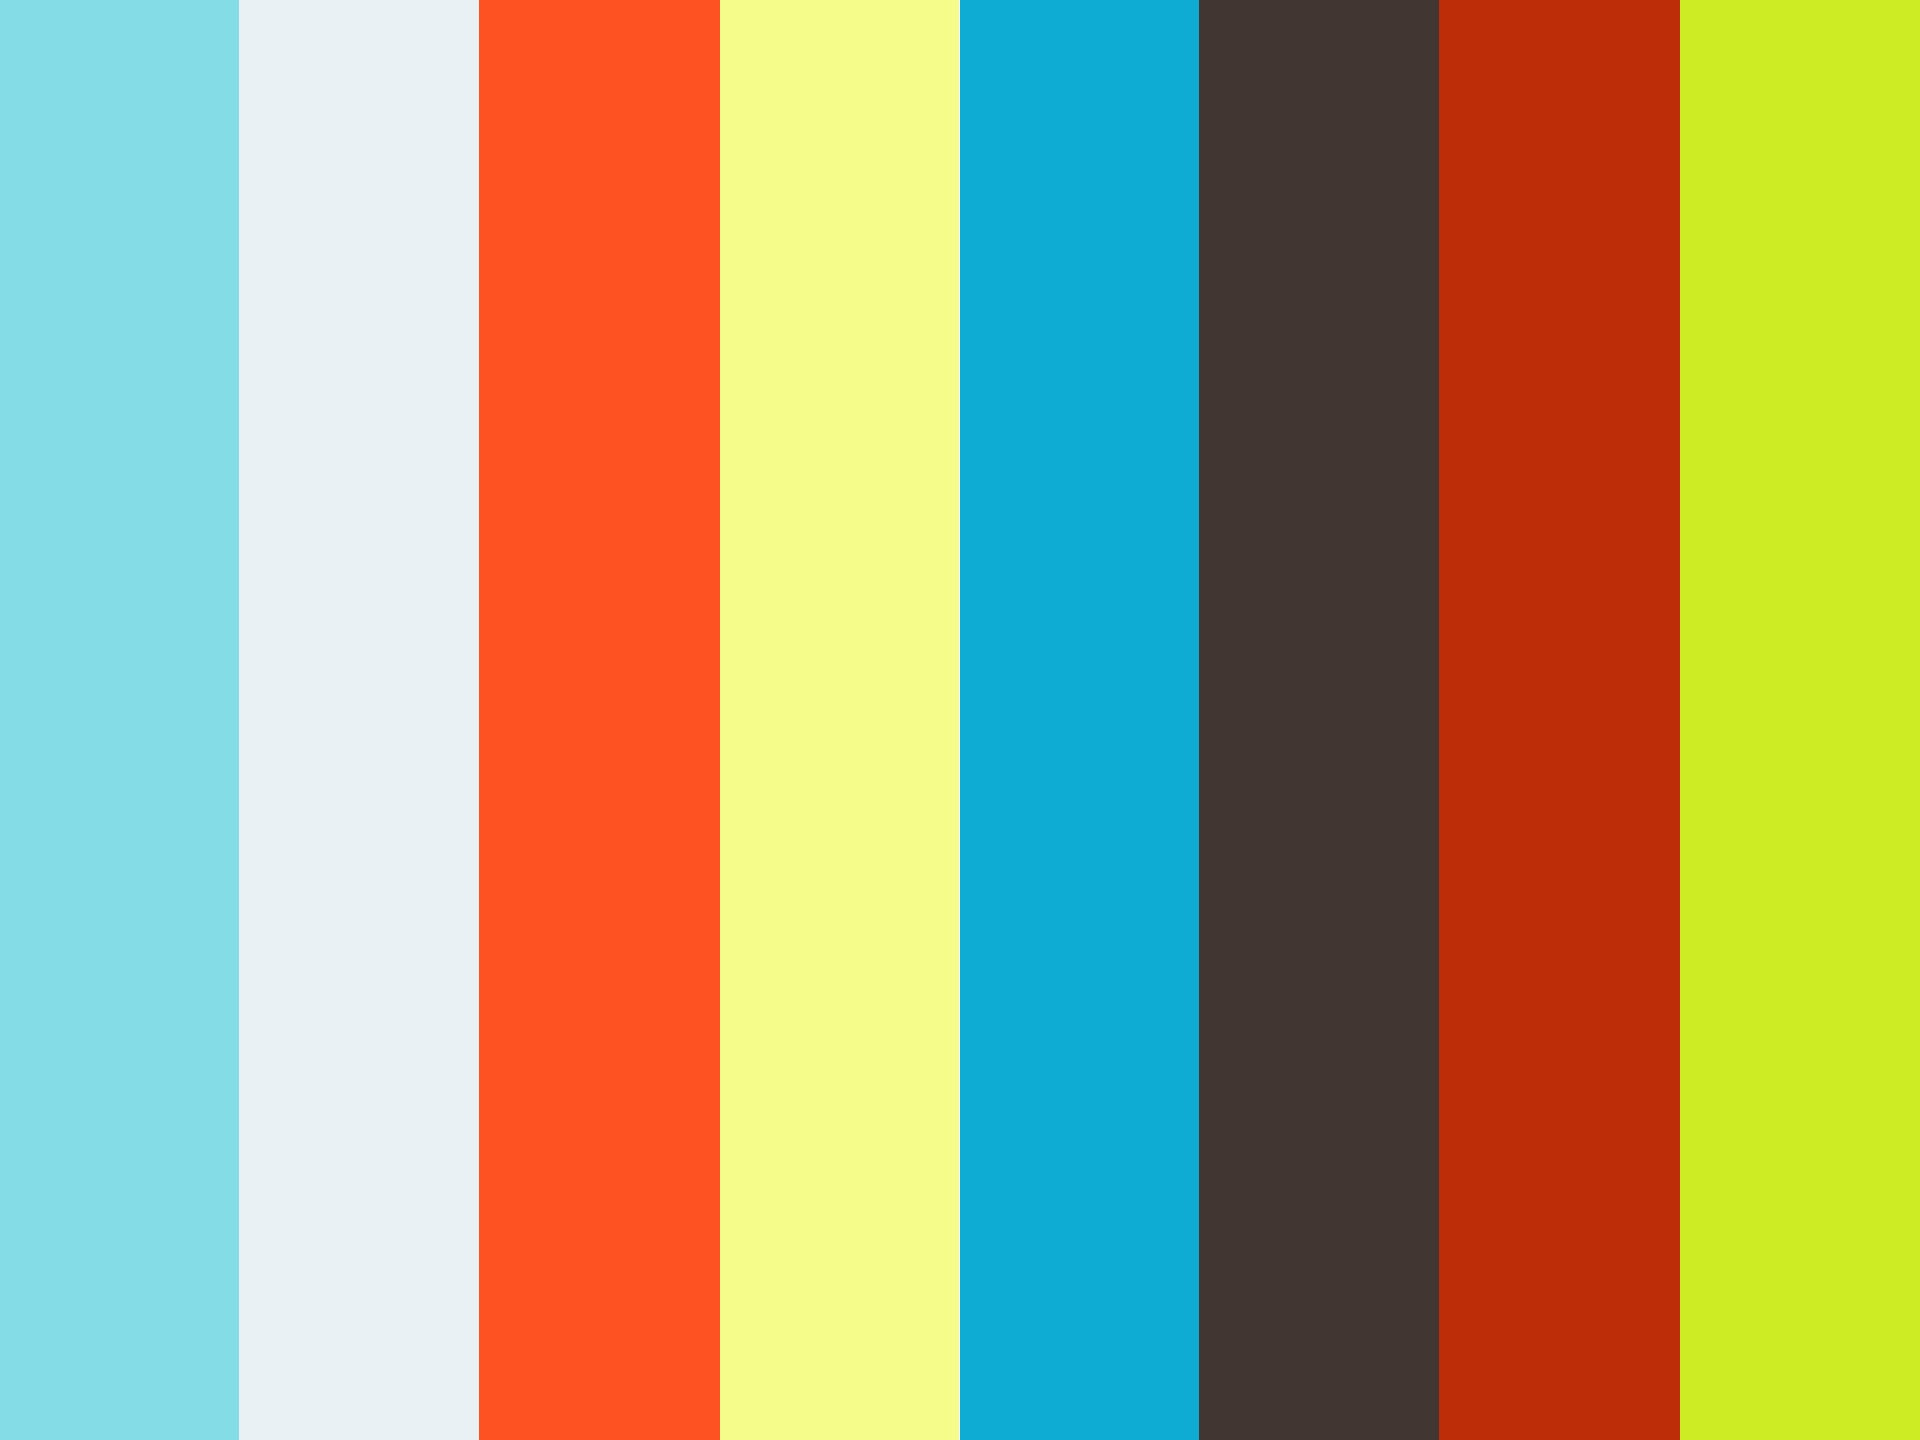 Anatomy of Failures Following Ligation of Intersphincteric Tract Technique for Anal Fistula: 93 Patients/4 Years 2011